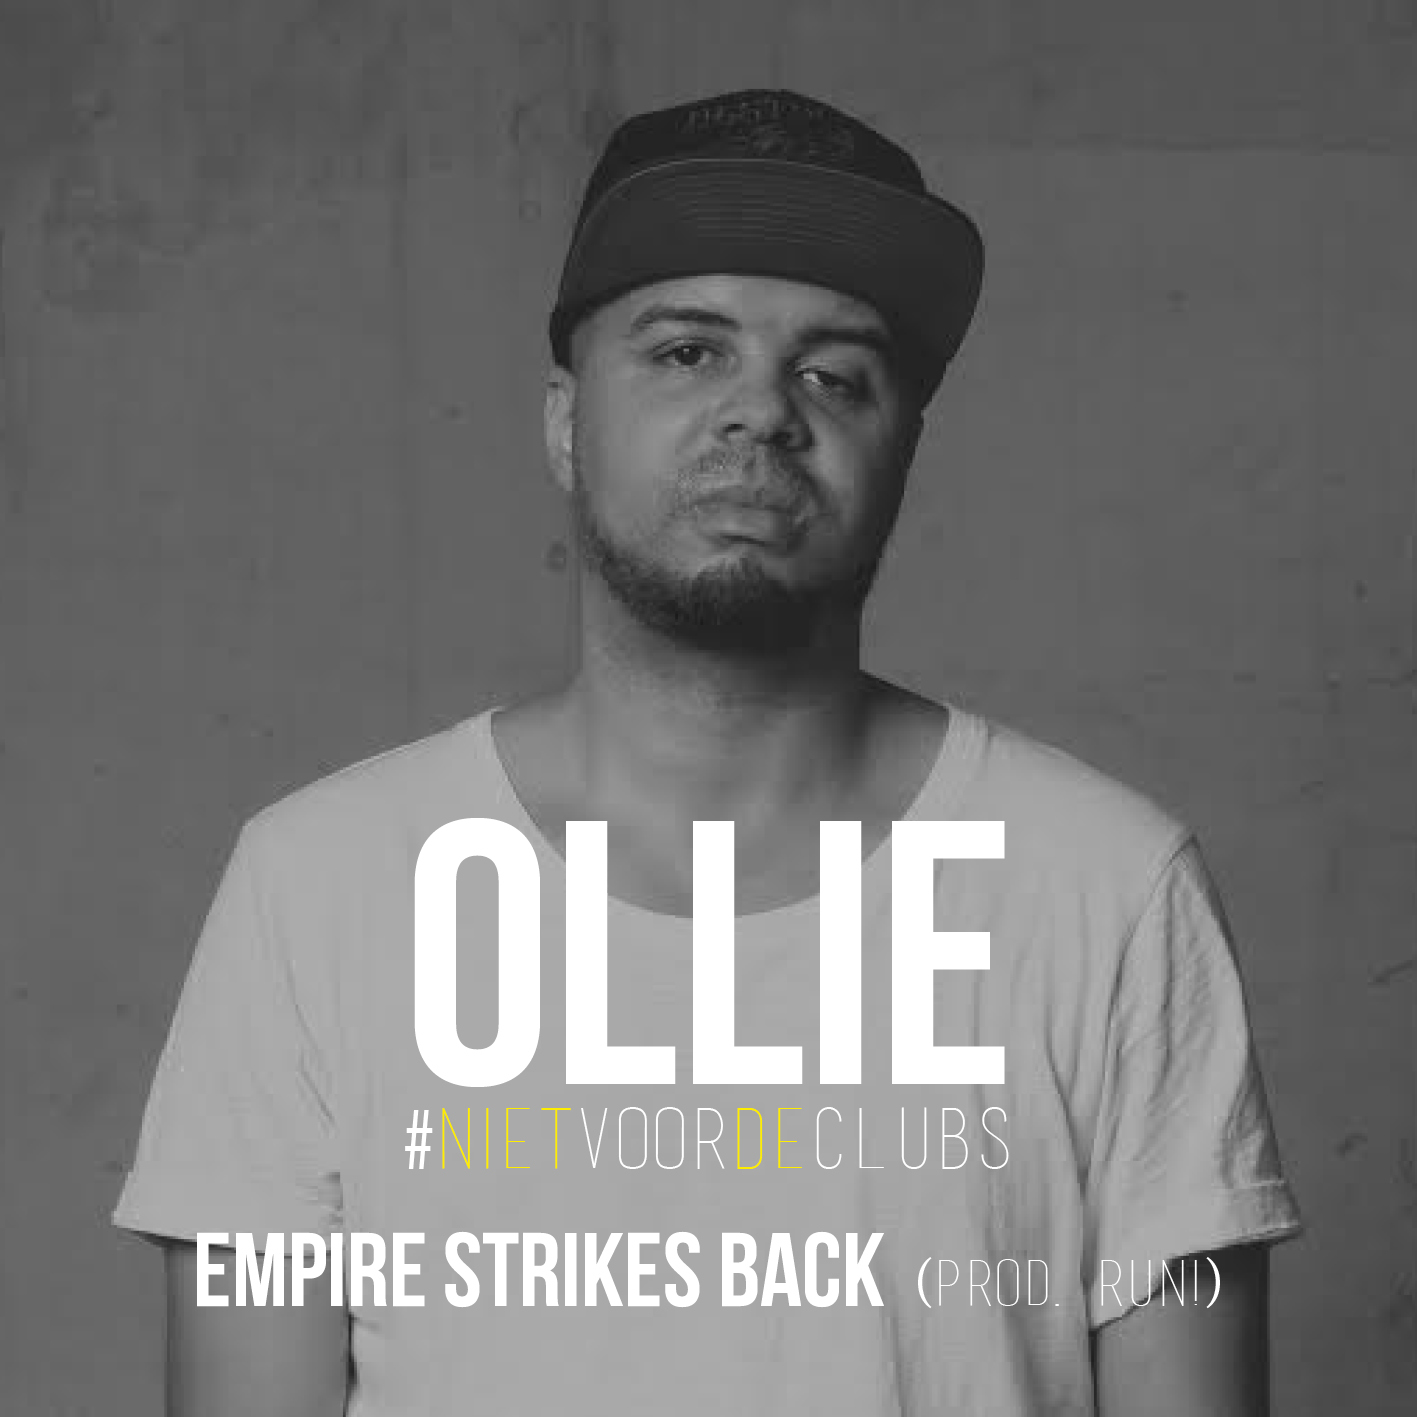 2. Ollie - Empire Strikes Back Cover